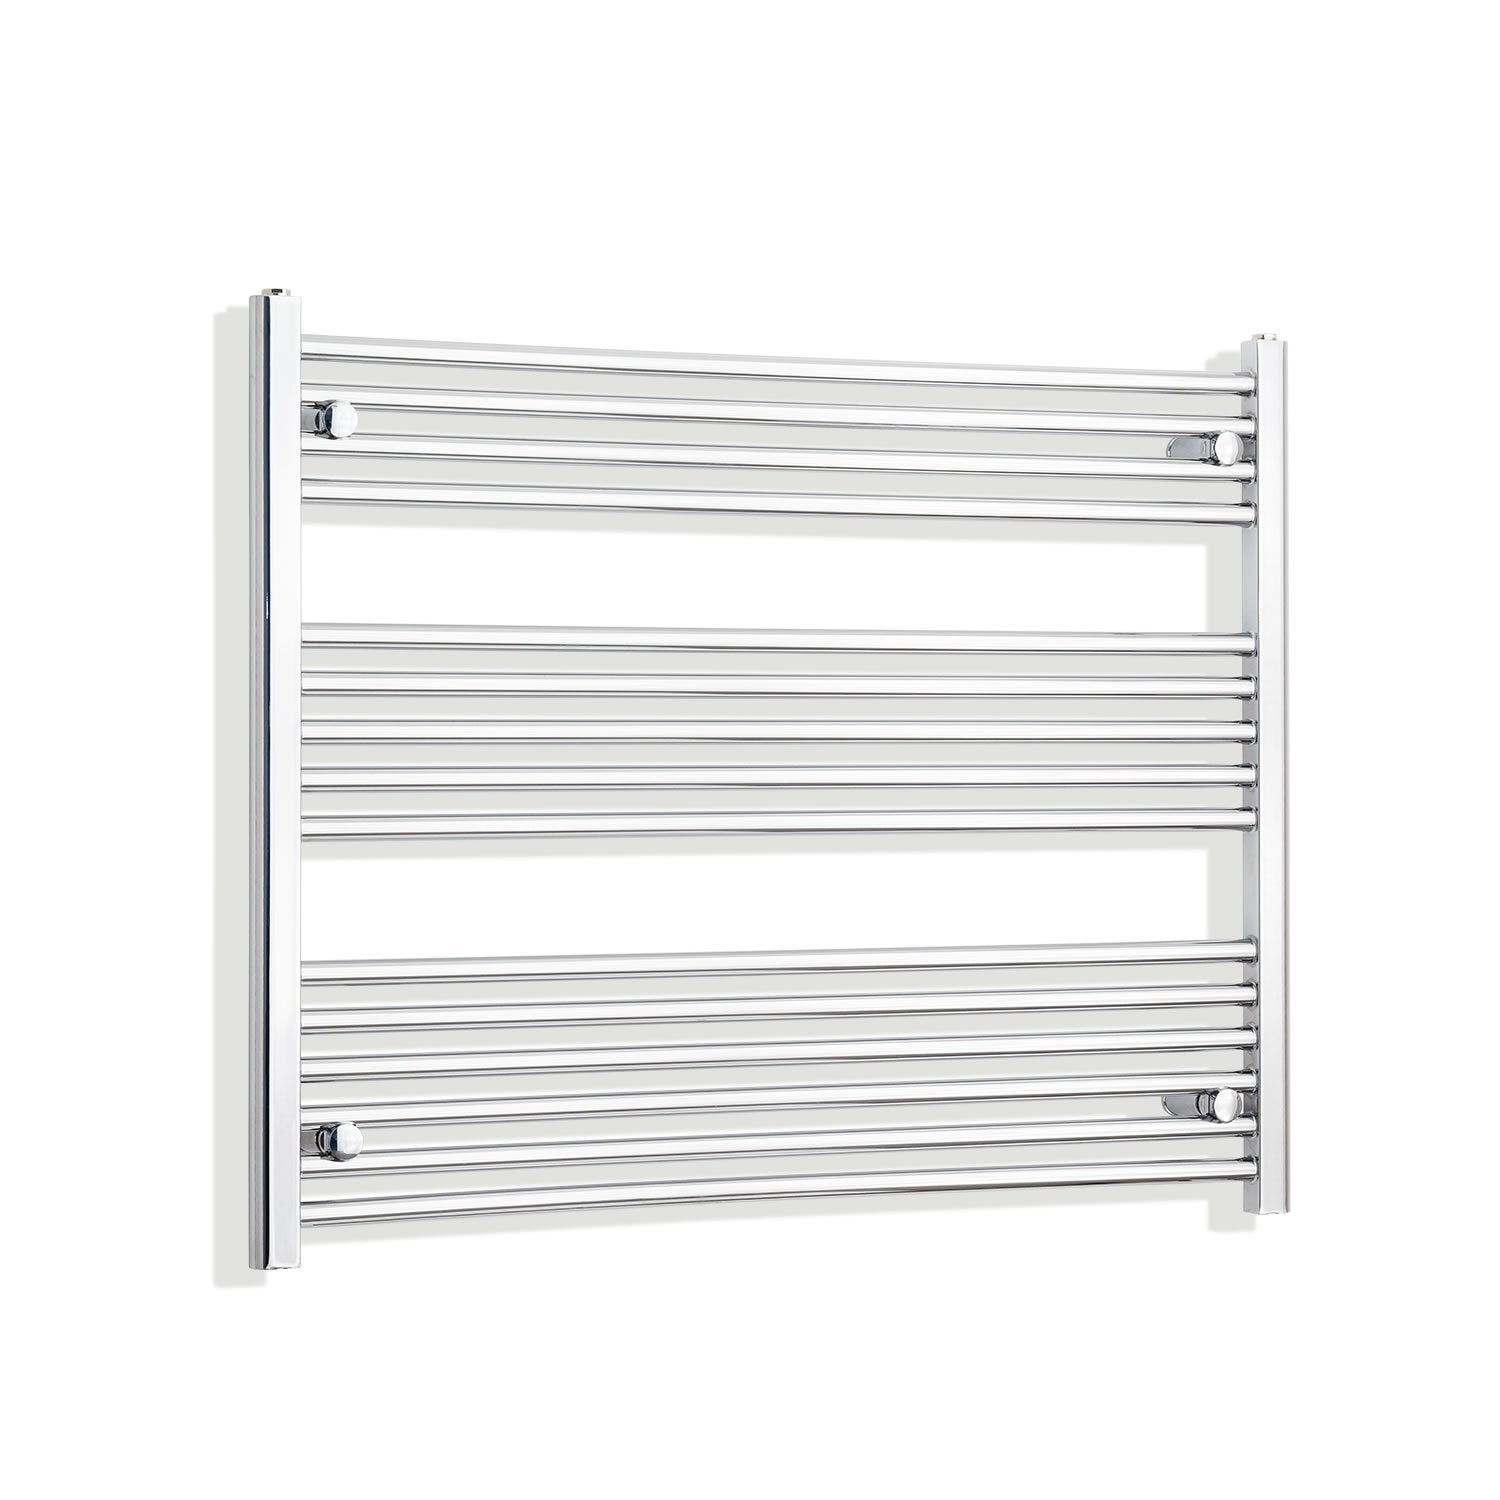 950mm Wide 800mm High Flat Chrome Heated Towel Rail Radiator HTR,Towel Rail Only